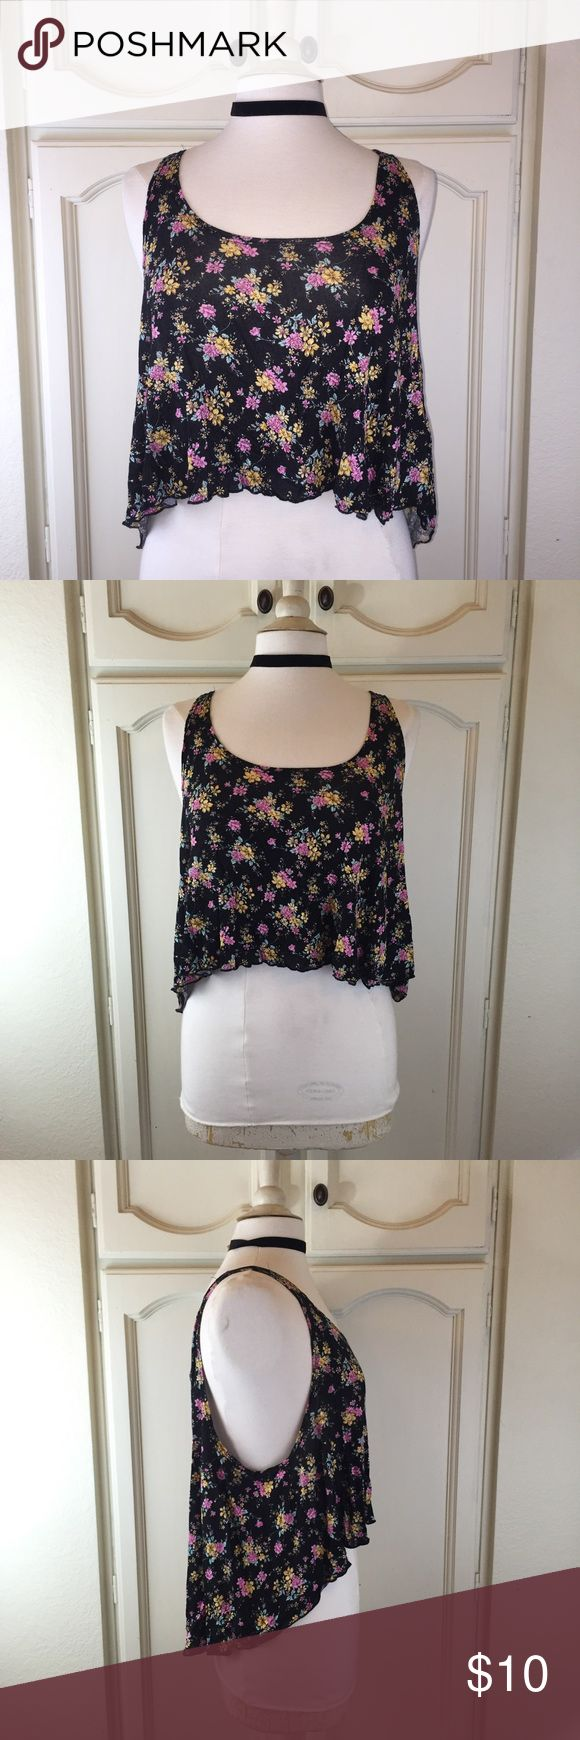 Floral Print Crop Top This cropped top is a needed basic for your spring wardrobe. Looks great with anything high waisted! Jeans, skirts, or shorts! In perfect condition only worn once! Tank top is black with yellow and pink flowers and green leaves Tops Crop Tops